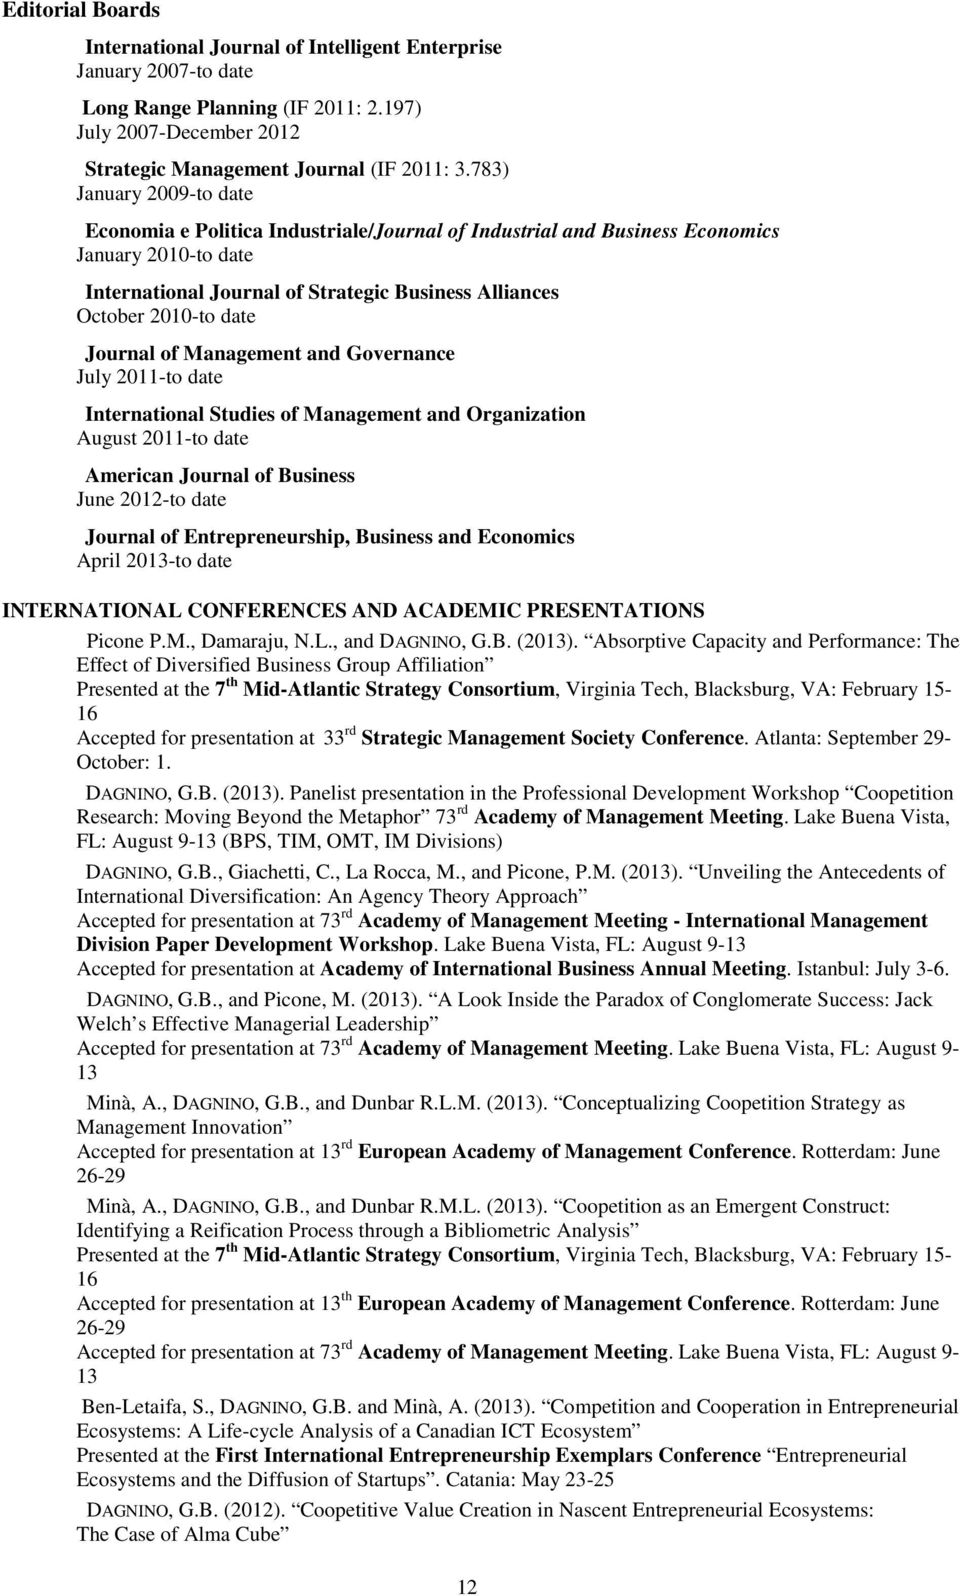 Journal of Management and Governance July 2011-to date International Studies of Management and Organization August 2011-to date American Journal of Business June 2012-to date Journal of